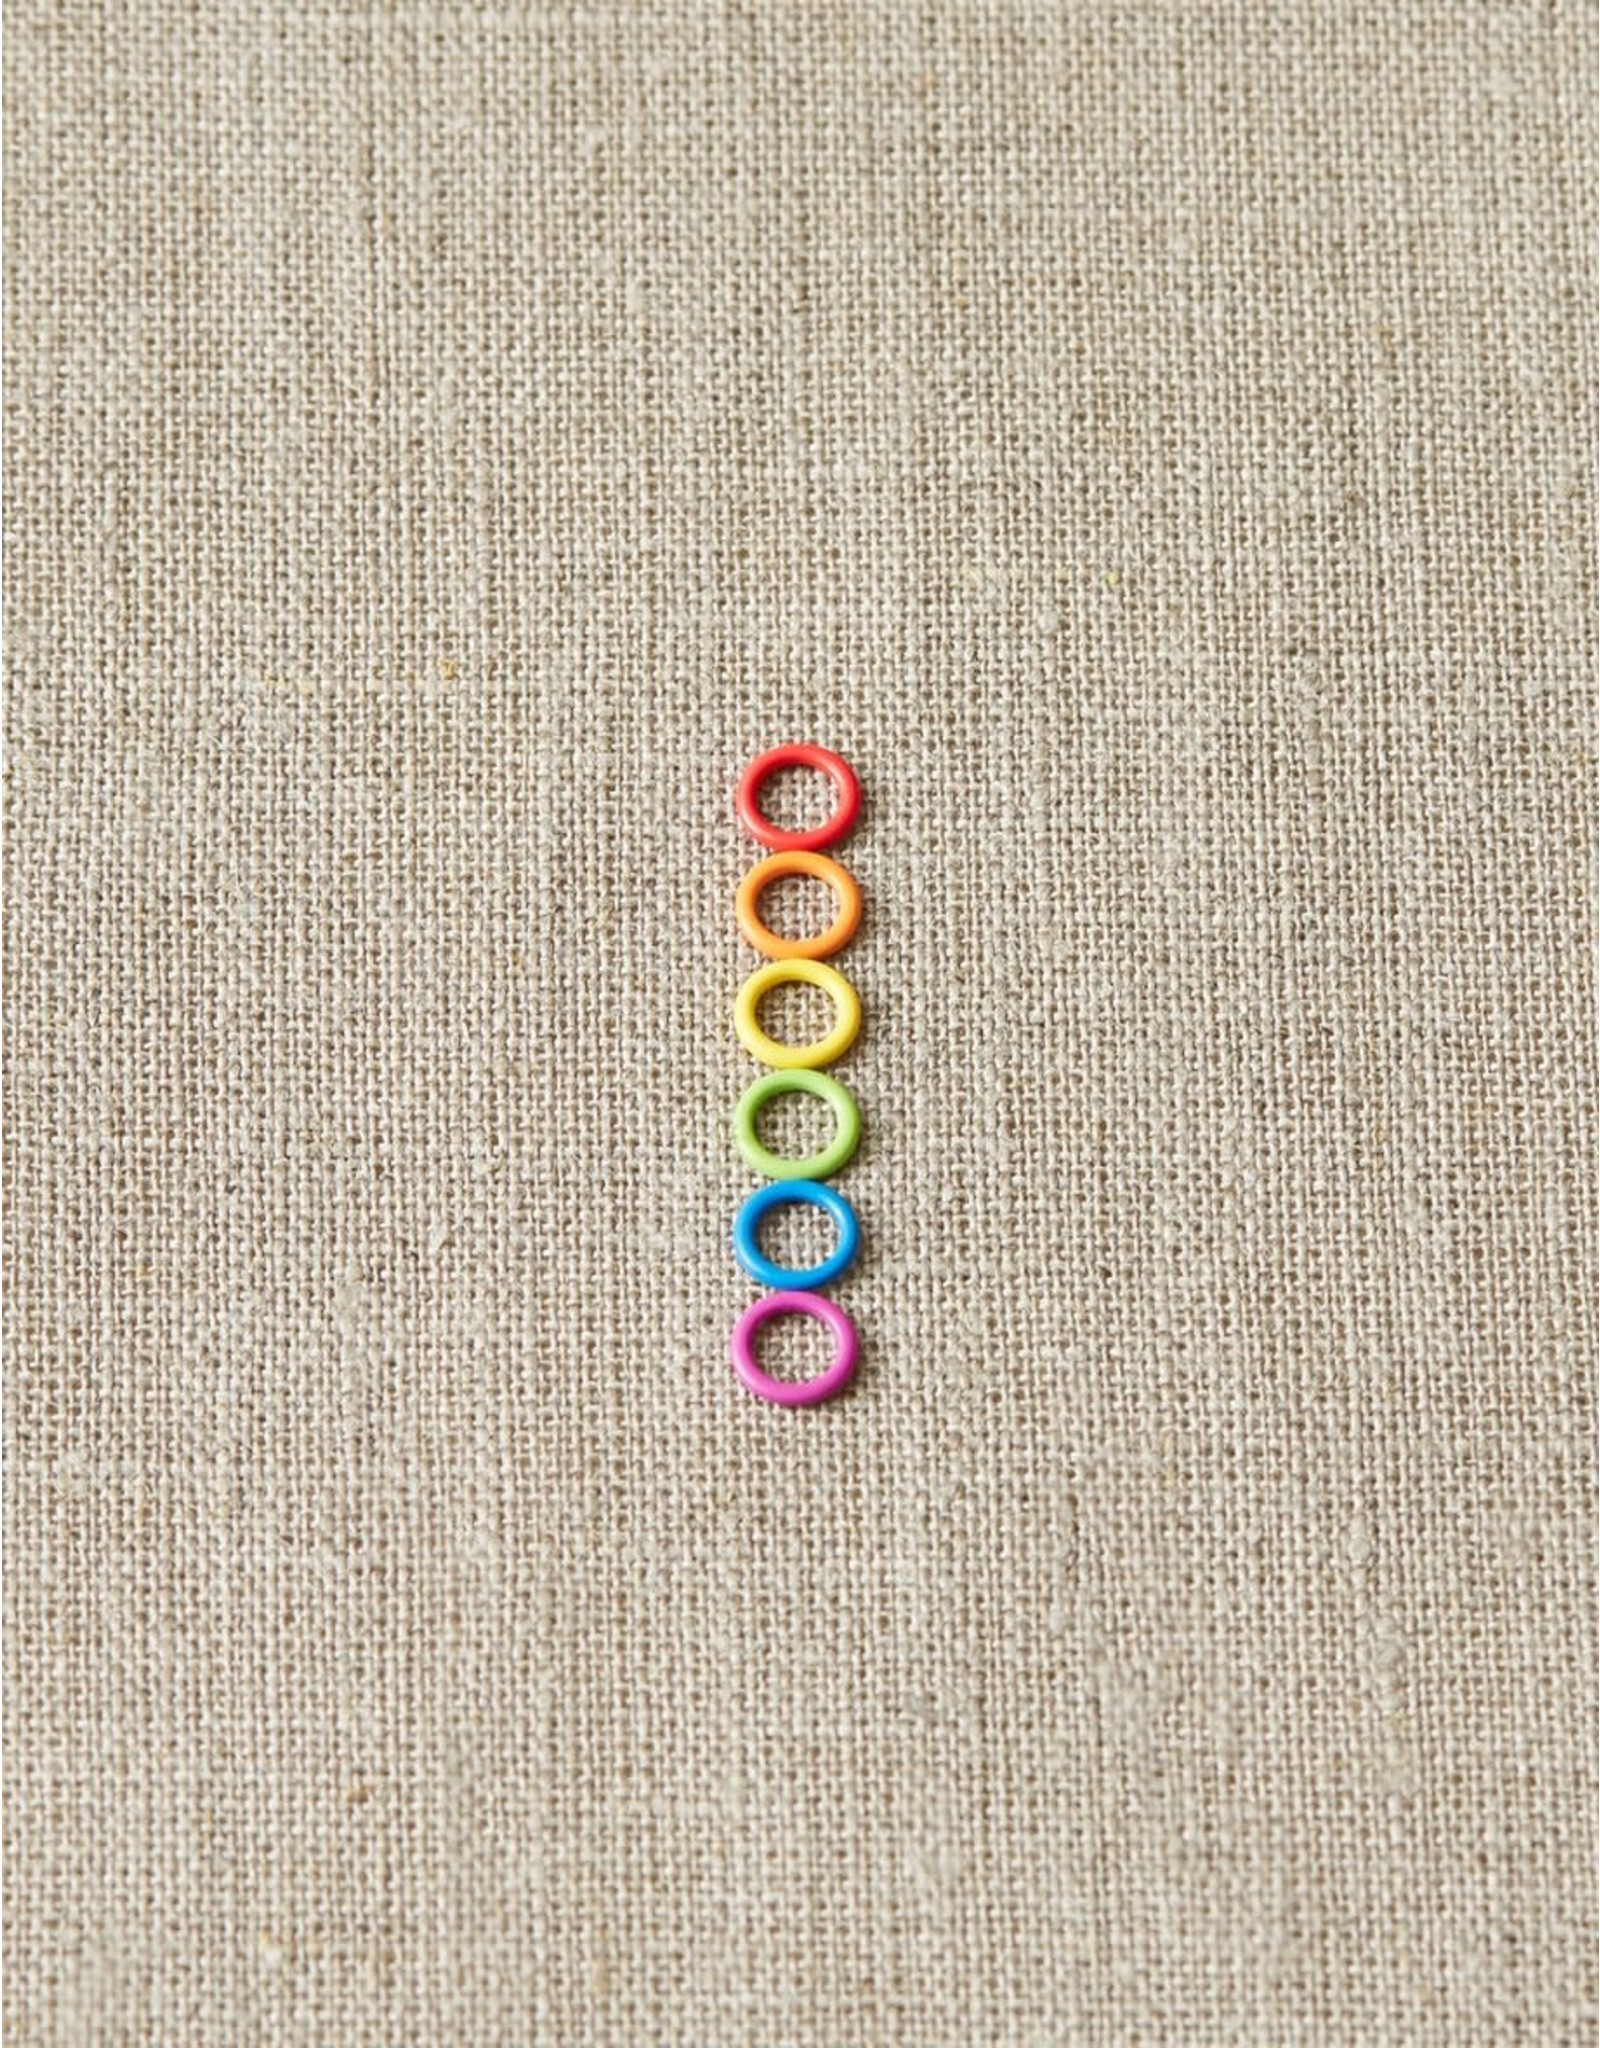 Small Colorful Ring Stitch Markers by Cocoknits